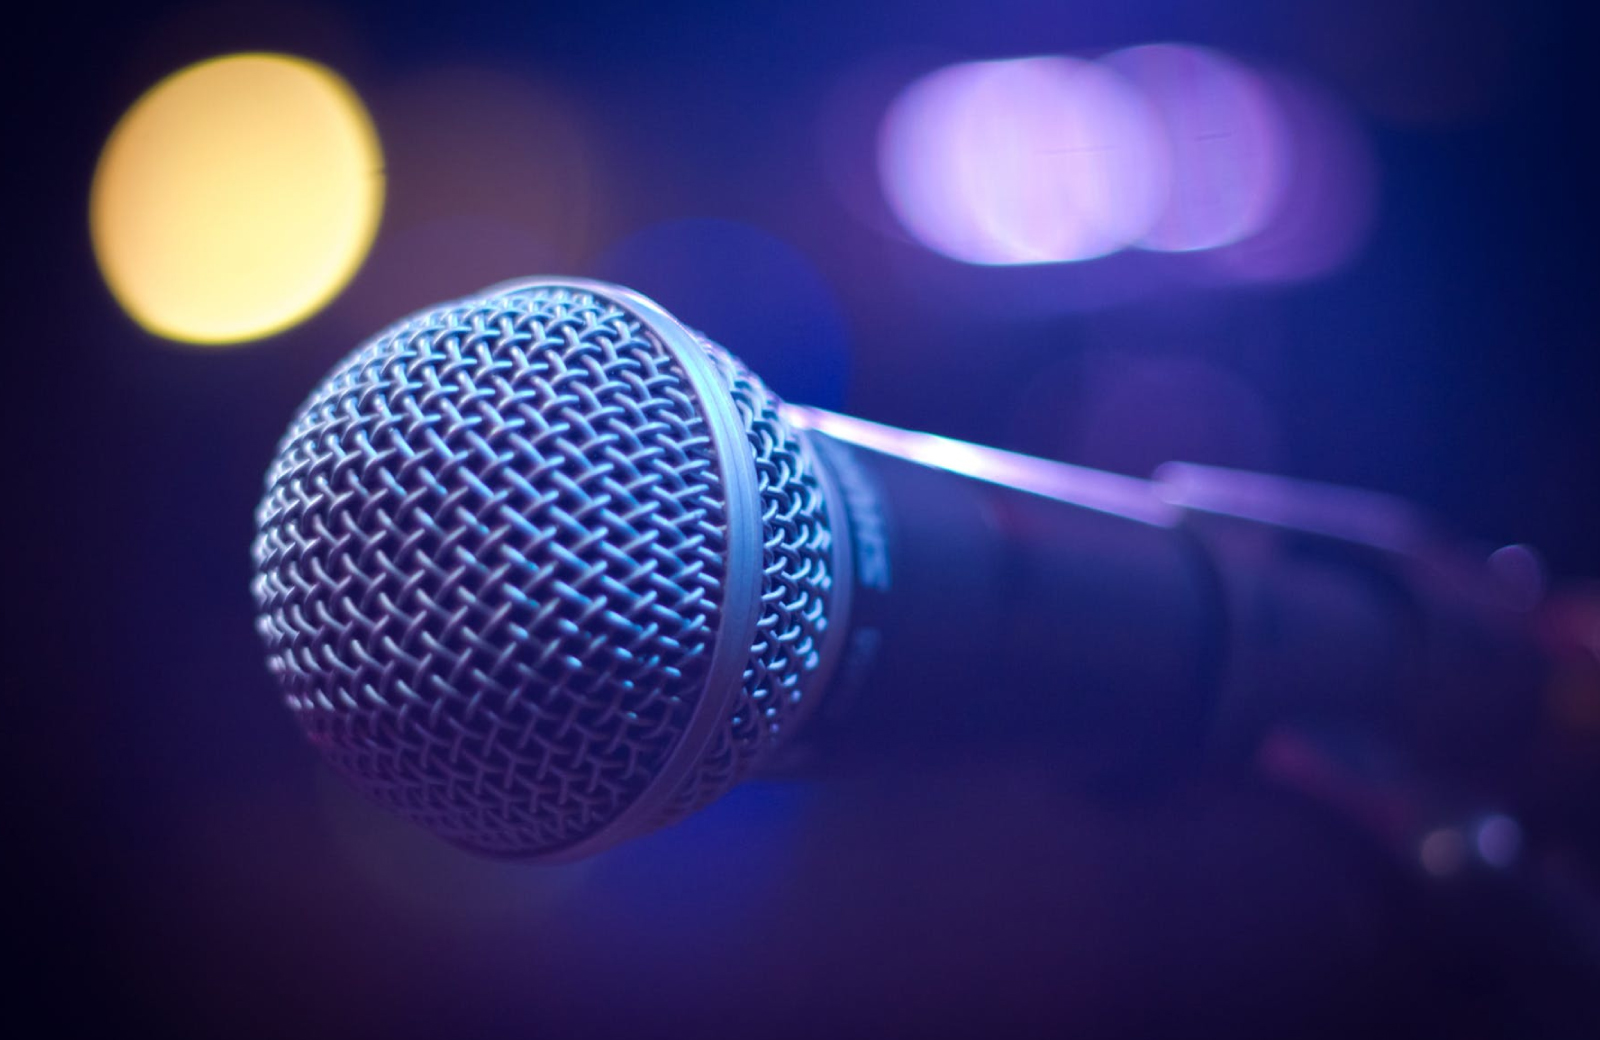 a close up of a karaoke Microphone with blue & yellow lights in the background